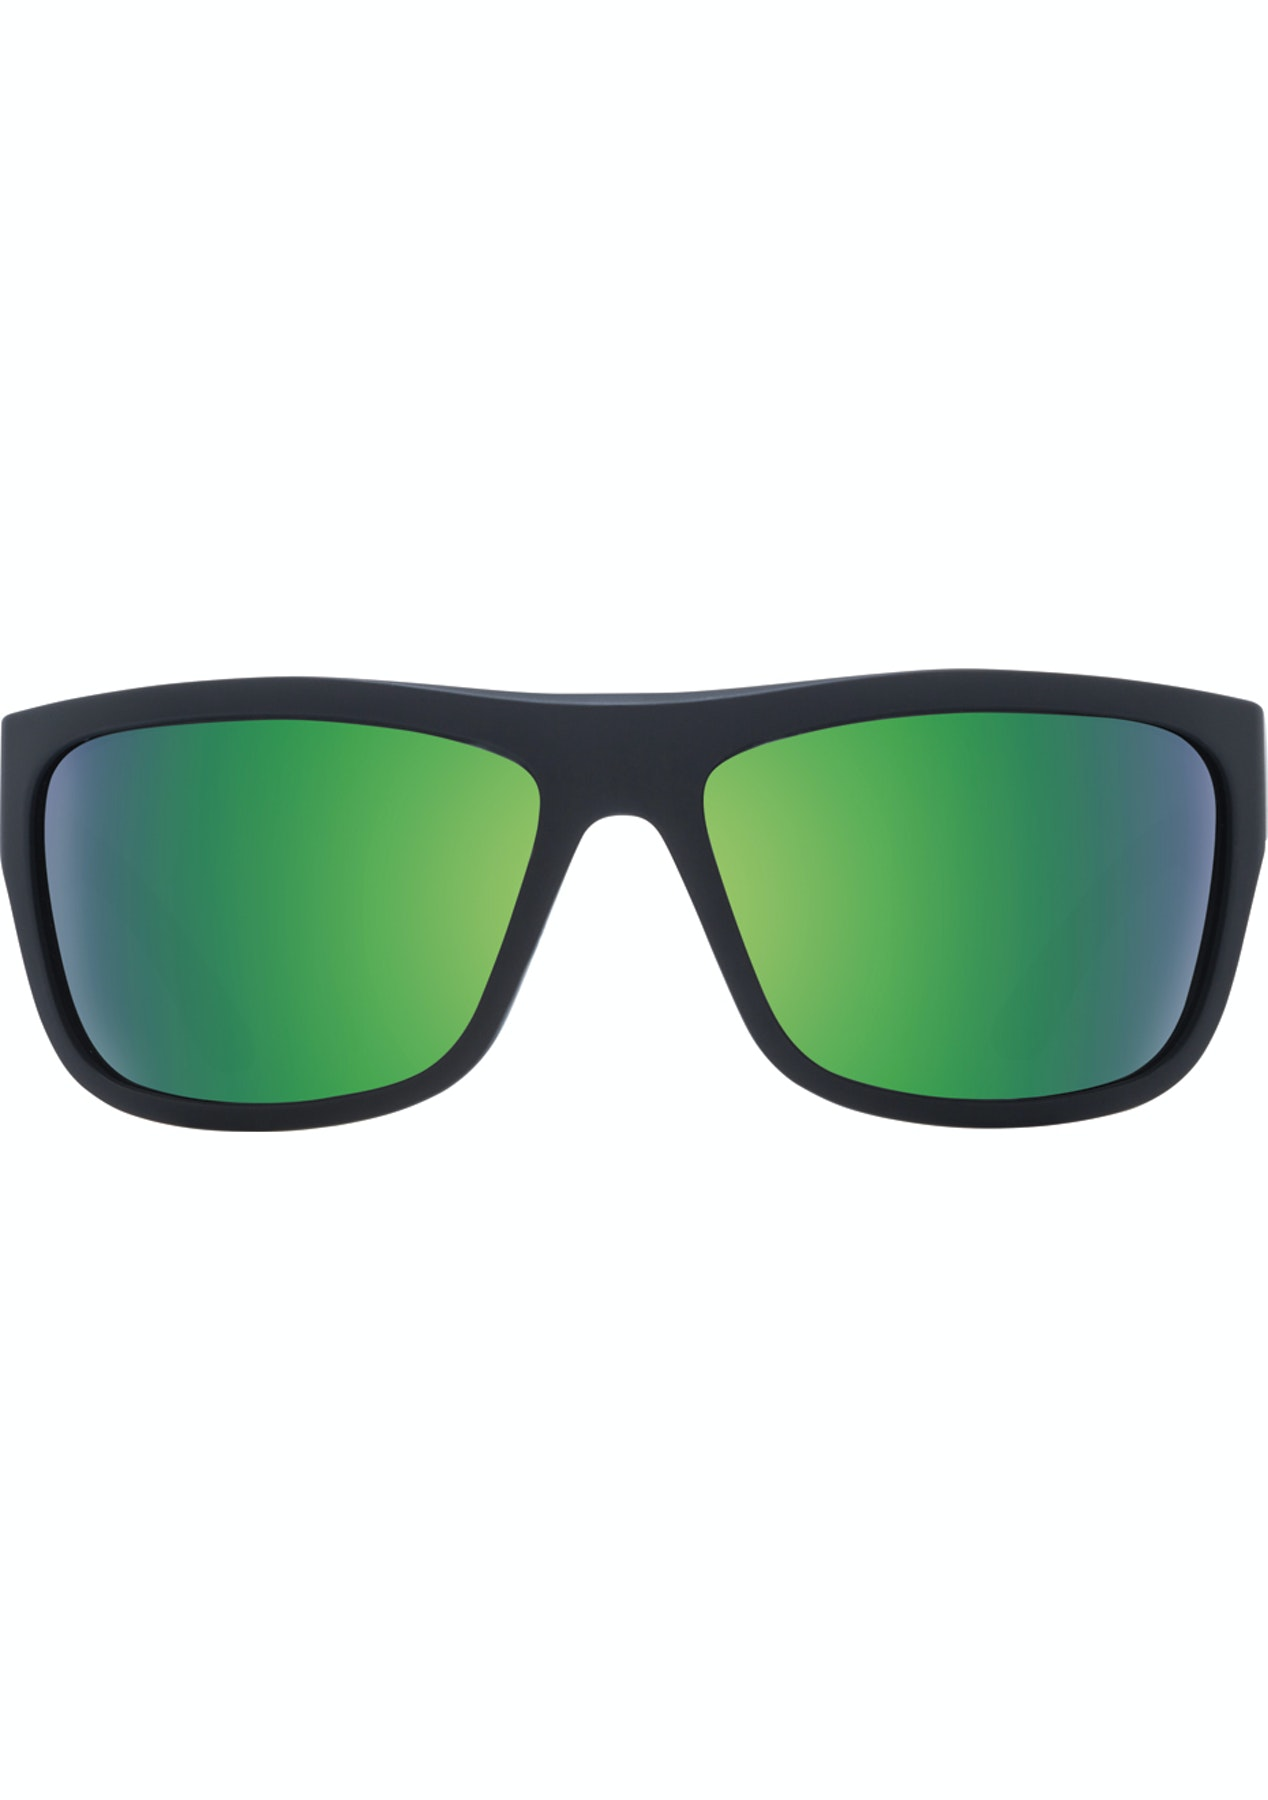 48d89799bc591 SPY Angler Sunglasses - Sunglasses Steals - Onceit